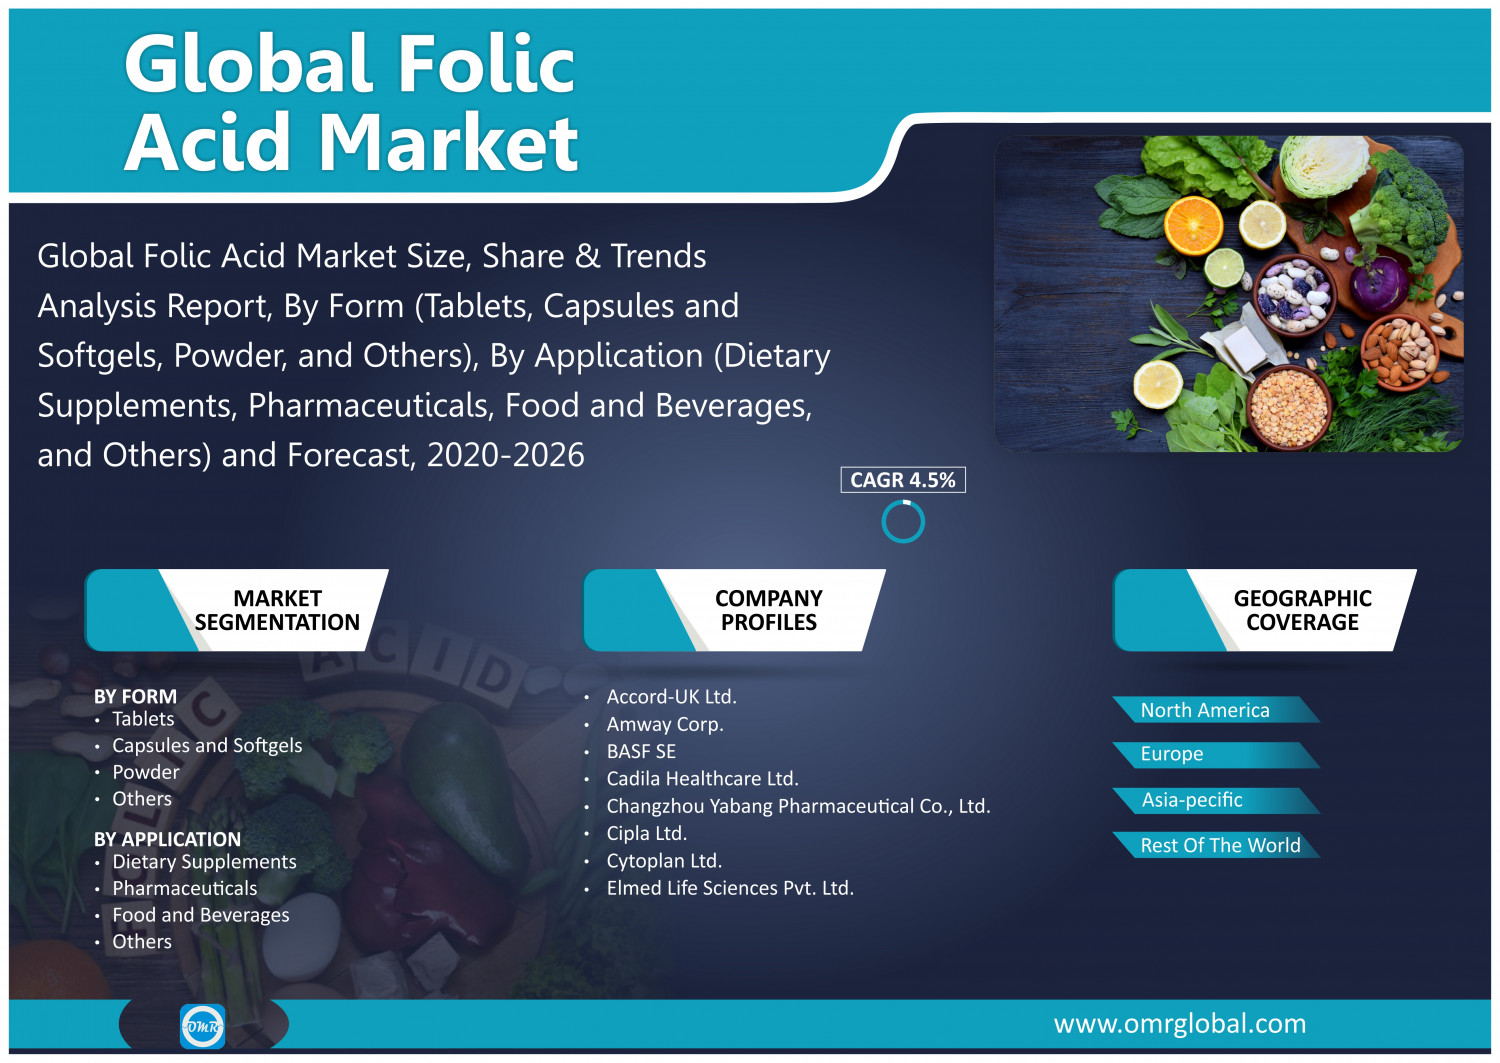 Folic Acid Market, Industry Share, Trends, Growth, Future Prospects, Forecast 2020 to 2026 Infographic